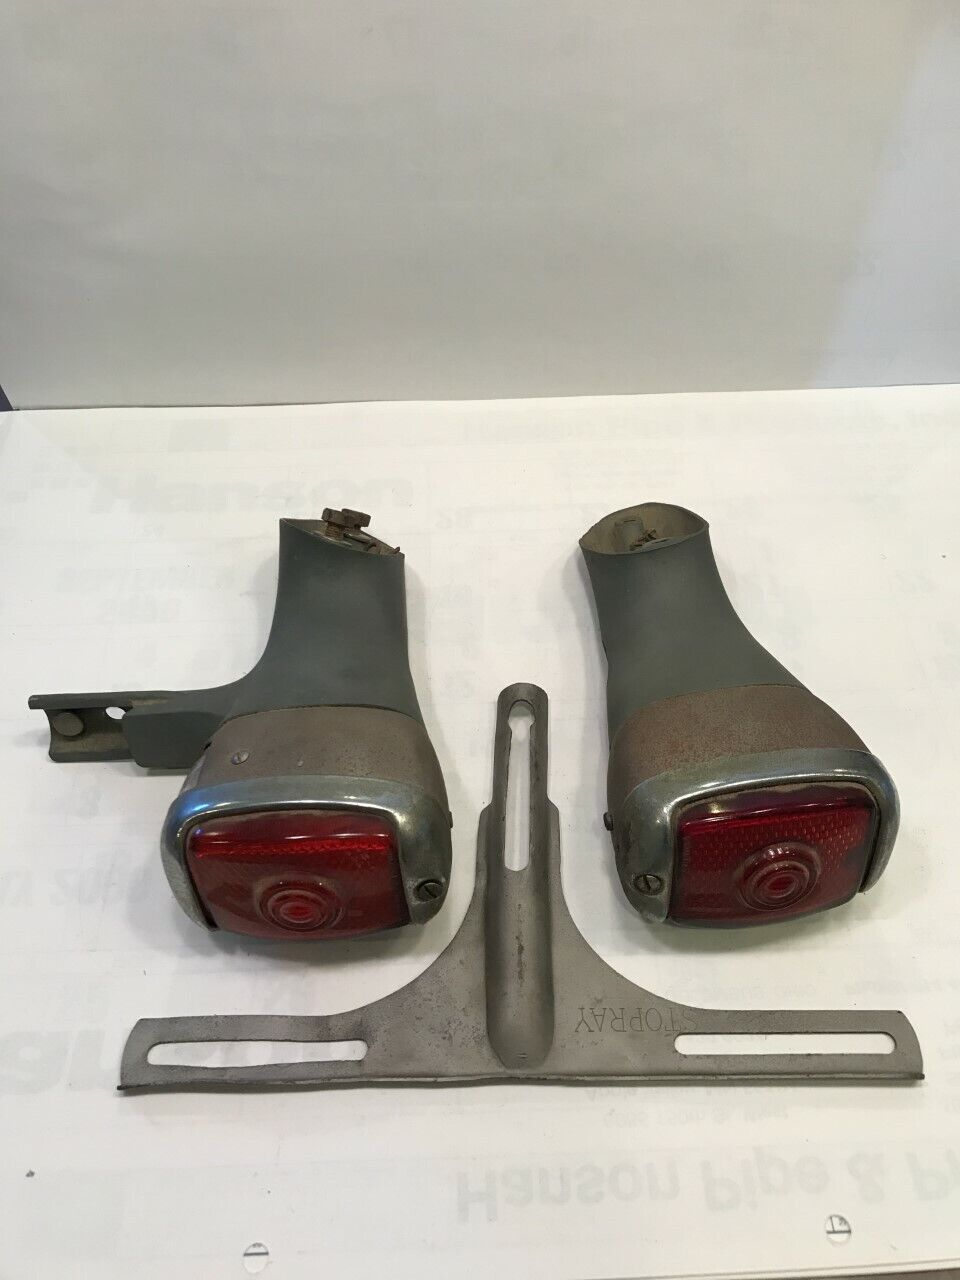 1937 1938 Chevrolet Tail Lights With Stands and License Plate Bracket